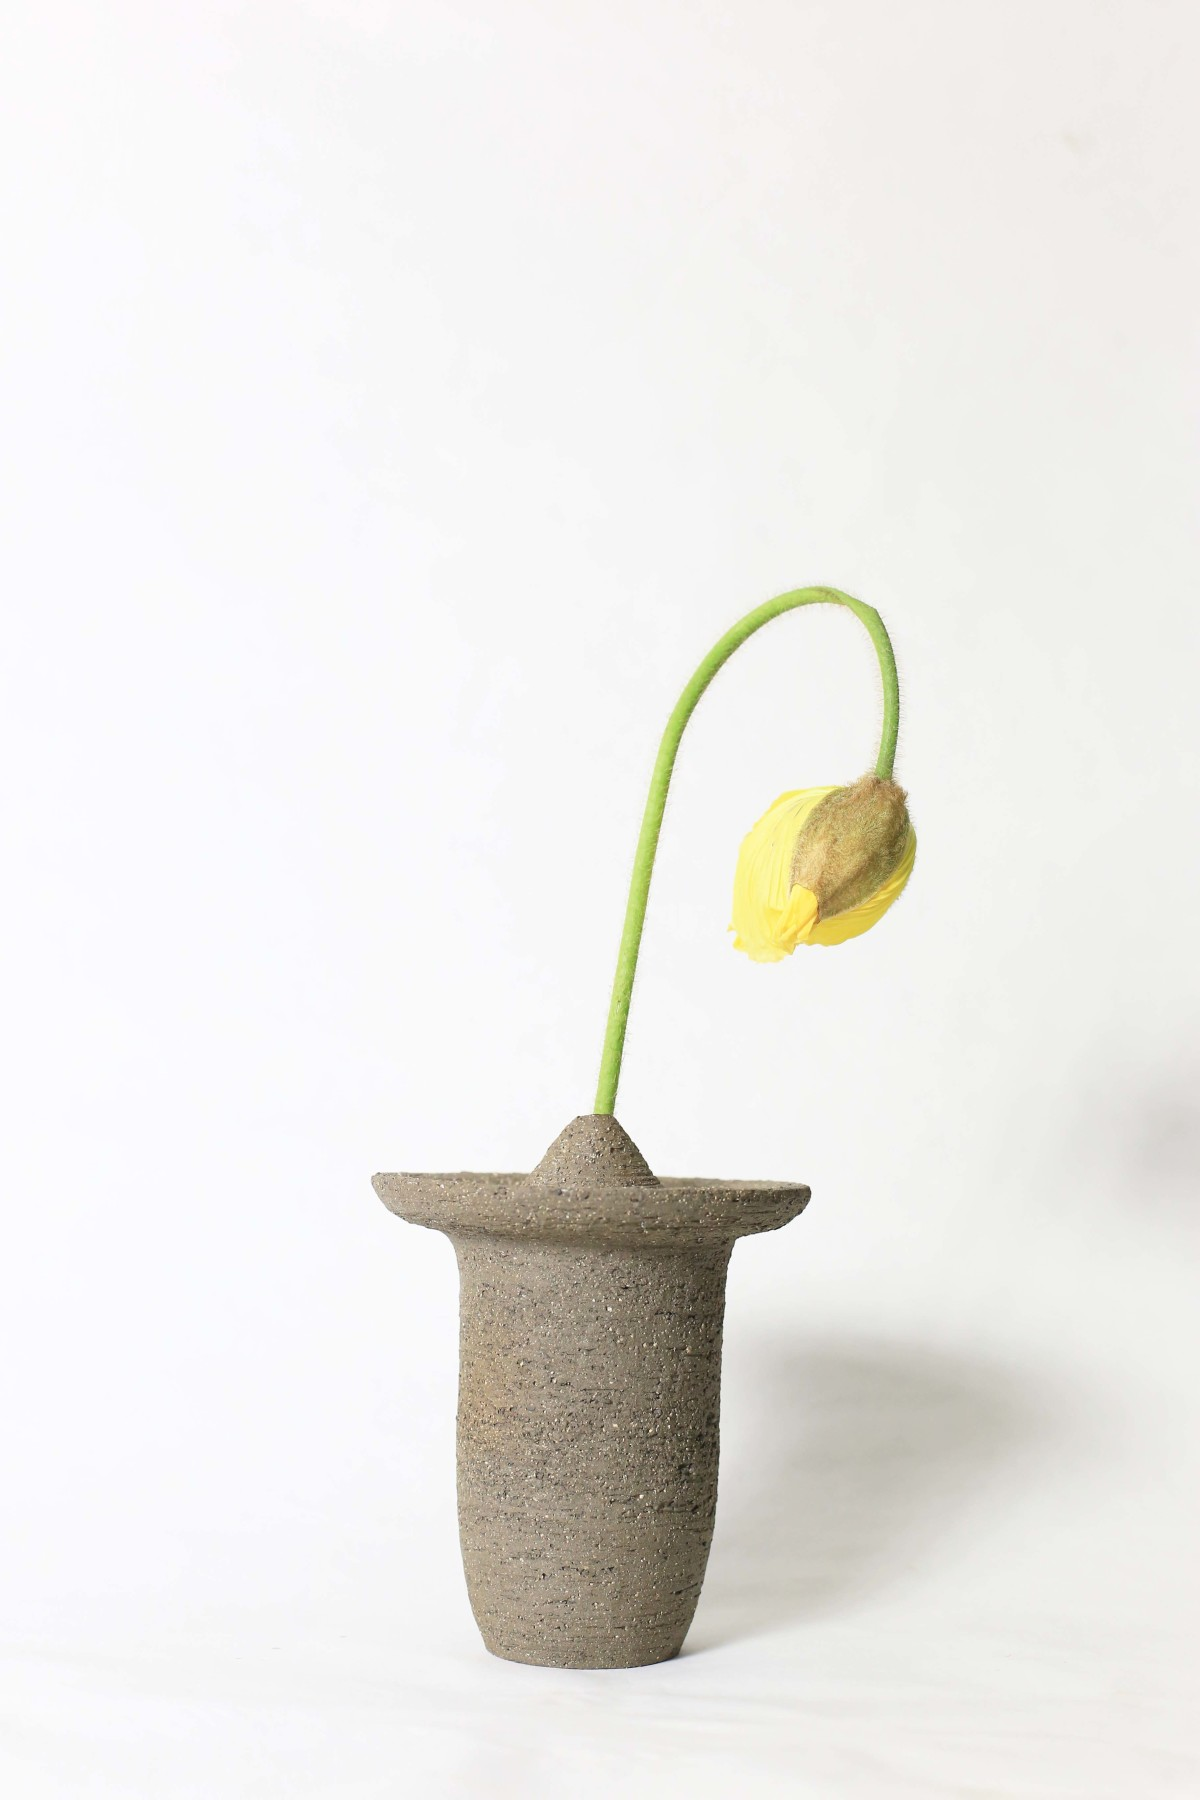 Ufo shaped gray ceramic vase with a yellow flower on a white background 2